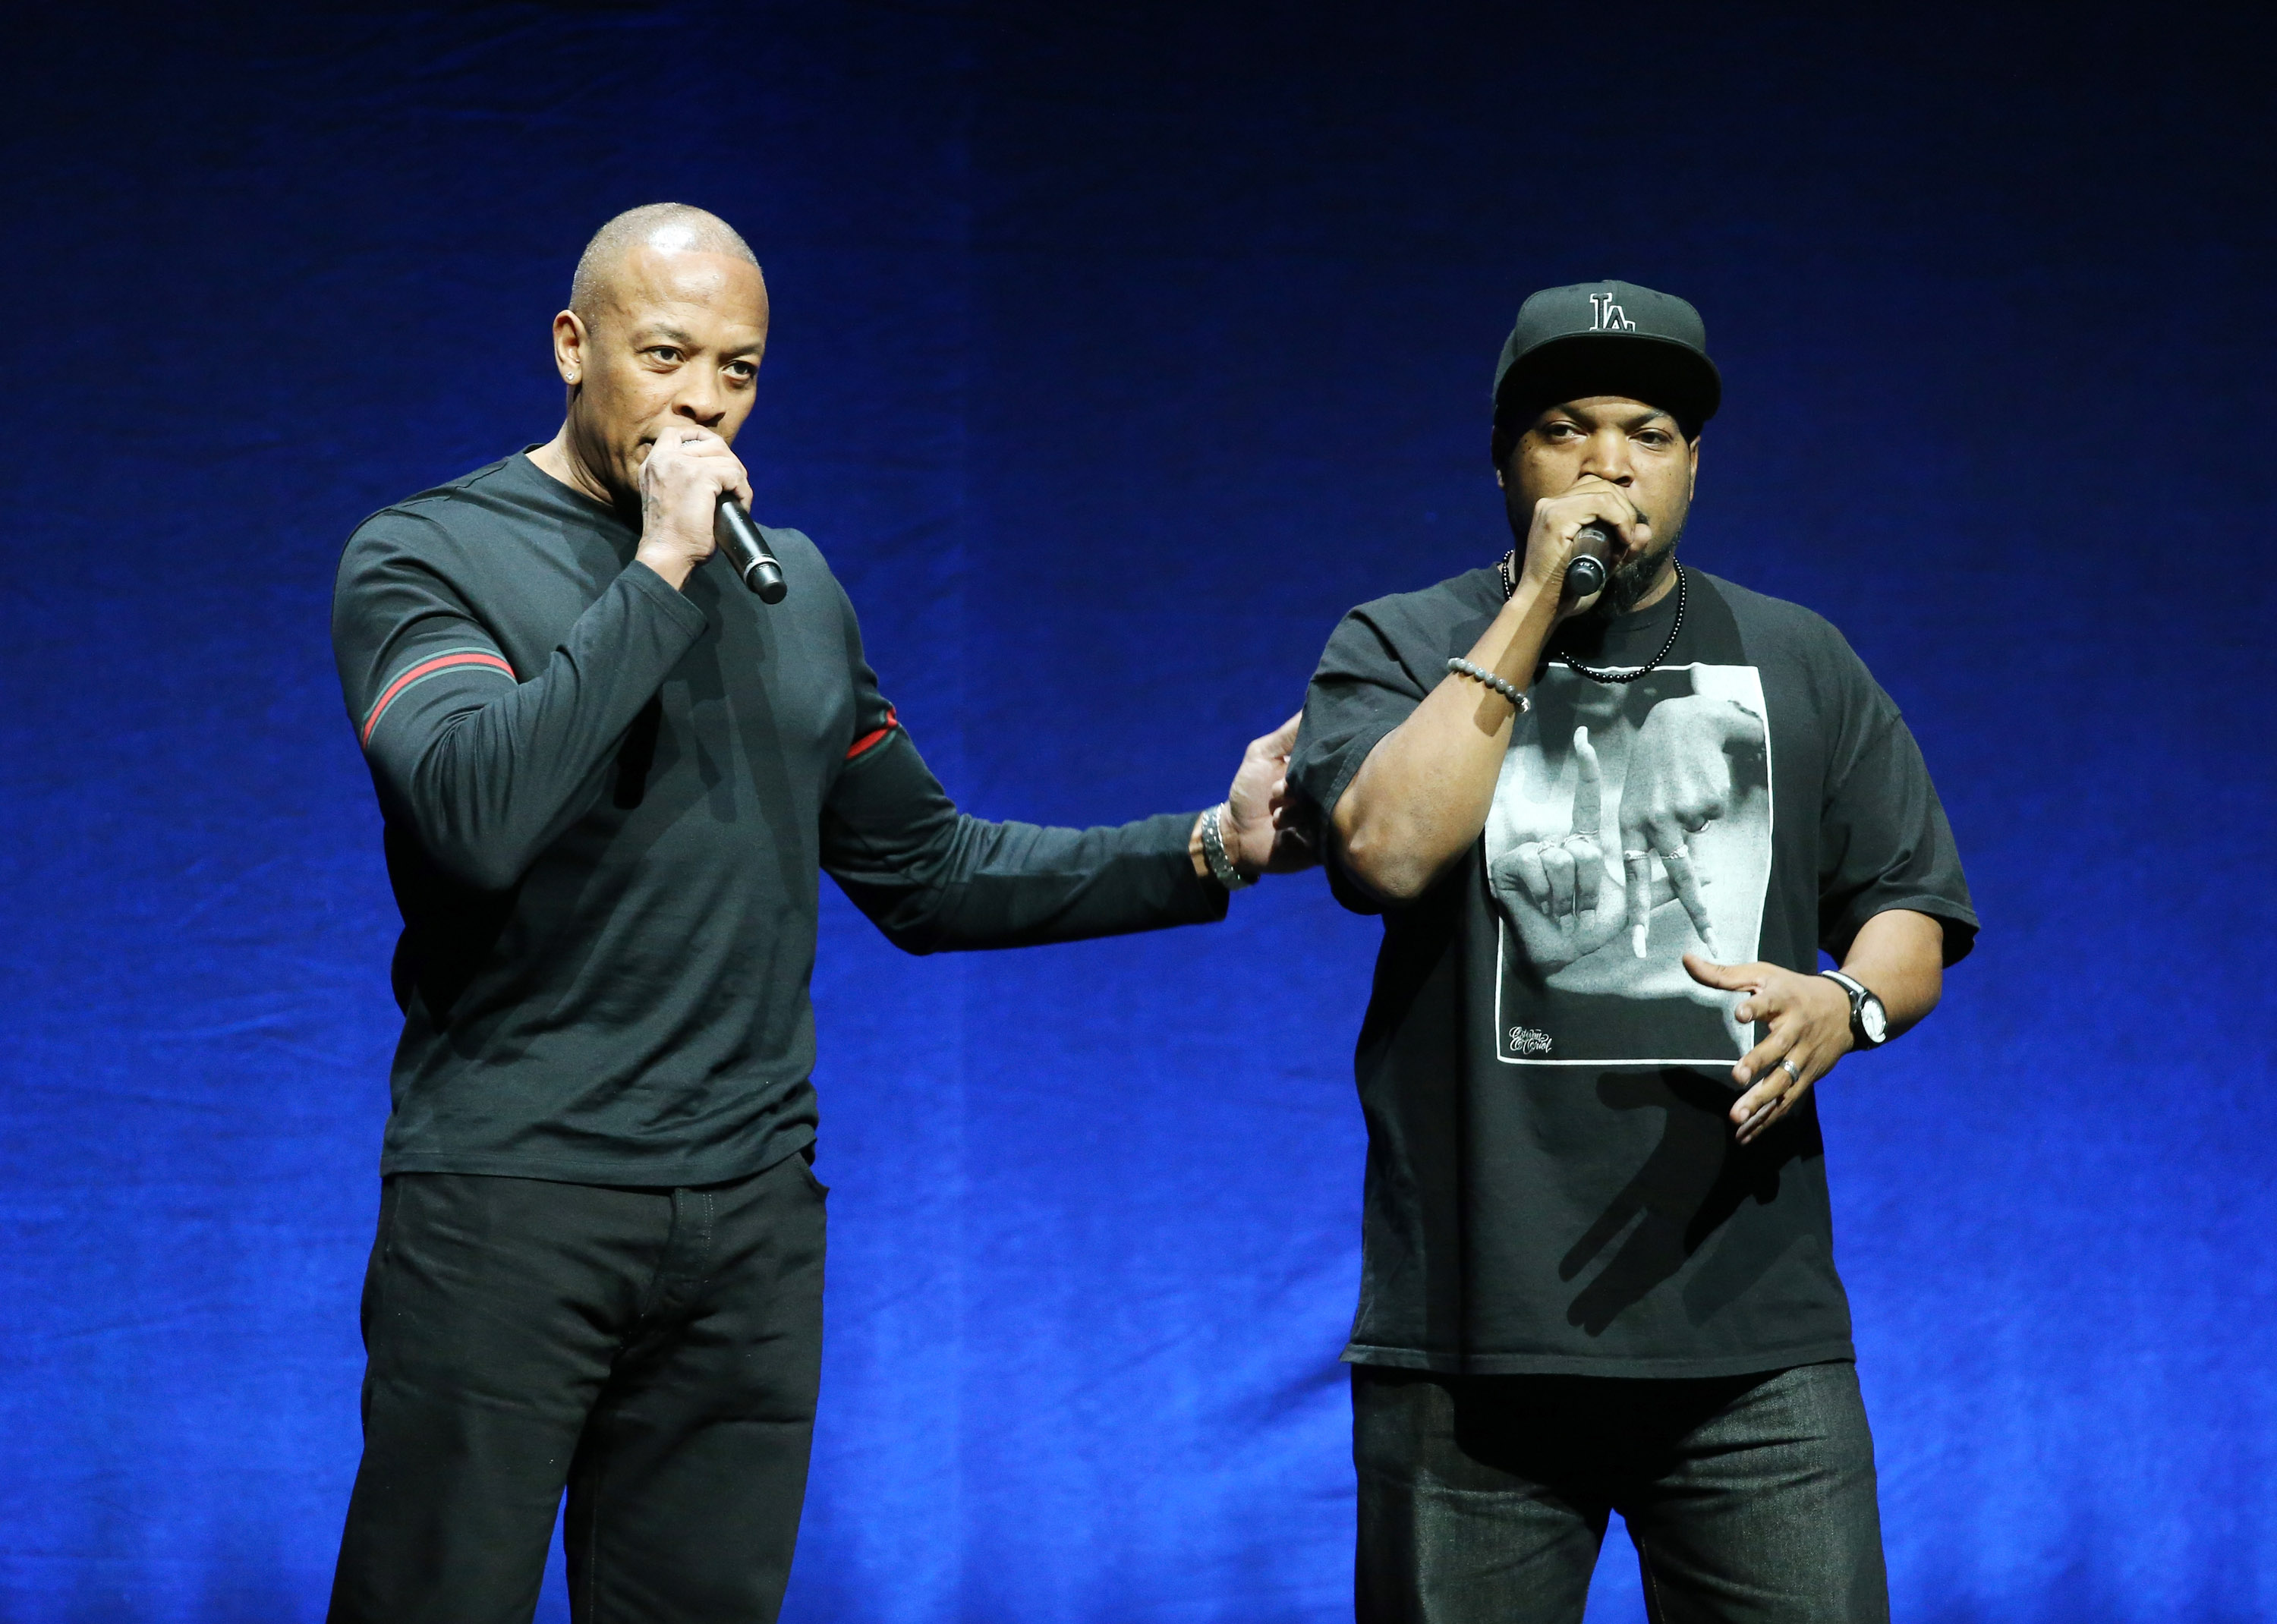 LAS VEGAS, NV - APRIL 23:  Dr. Dre and Ice Cube onstage at the 2015 CinemaCon - Universal Pictures Special Presentation Summe